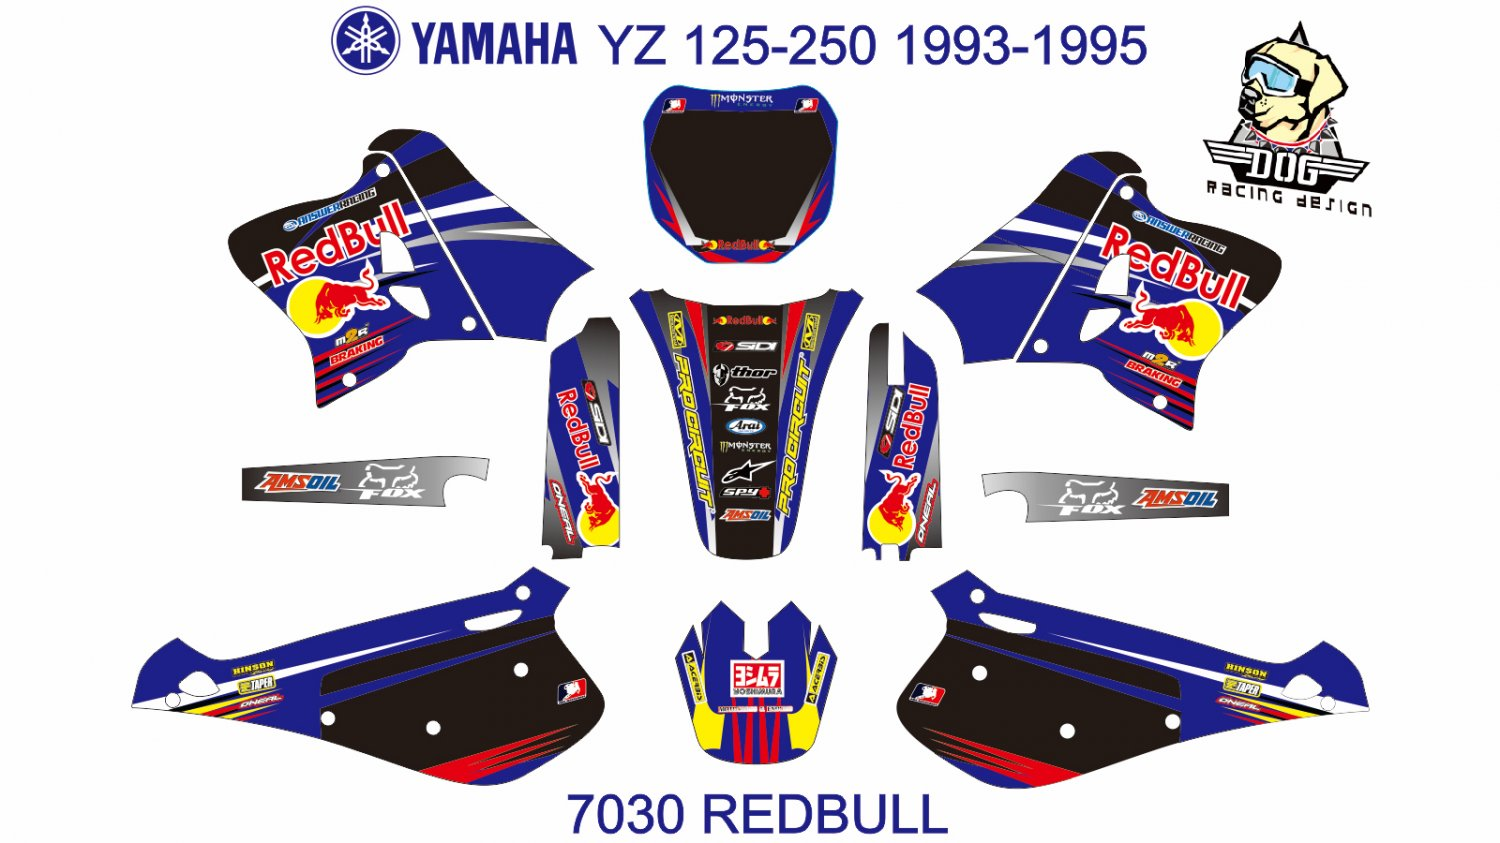 YAMAHA YZ 125-250 1993-1995 GRAPHIC DECAL KIT CODE.7030